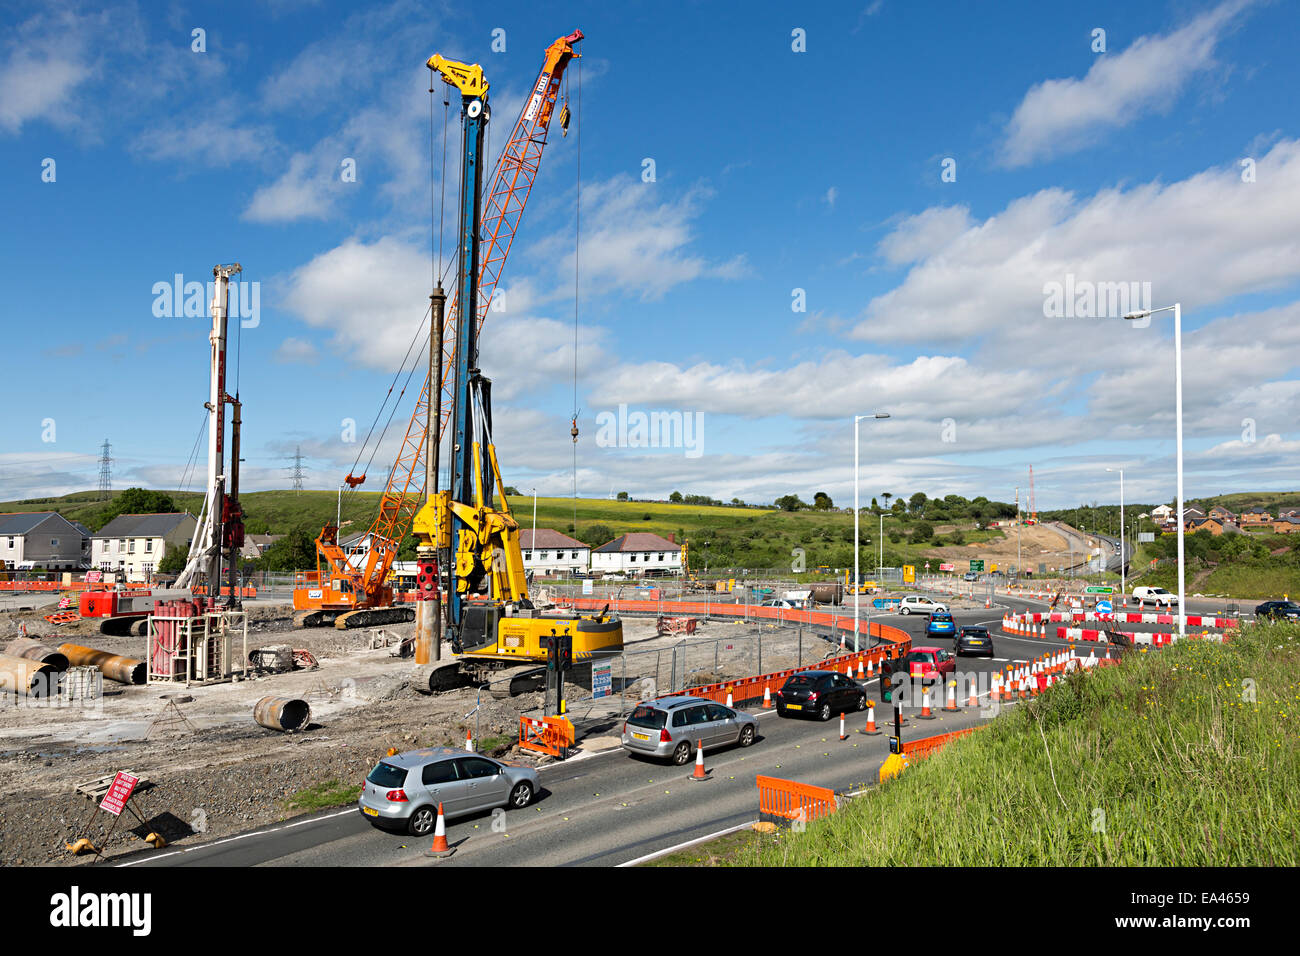 Roadworks during rebuilding the Heads of the Valleys A465 Road with temporary roundabout, Trefil, Wales, UK - Stock Image